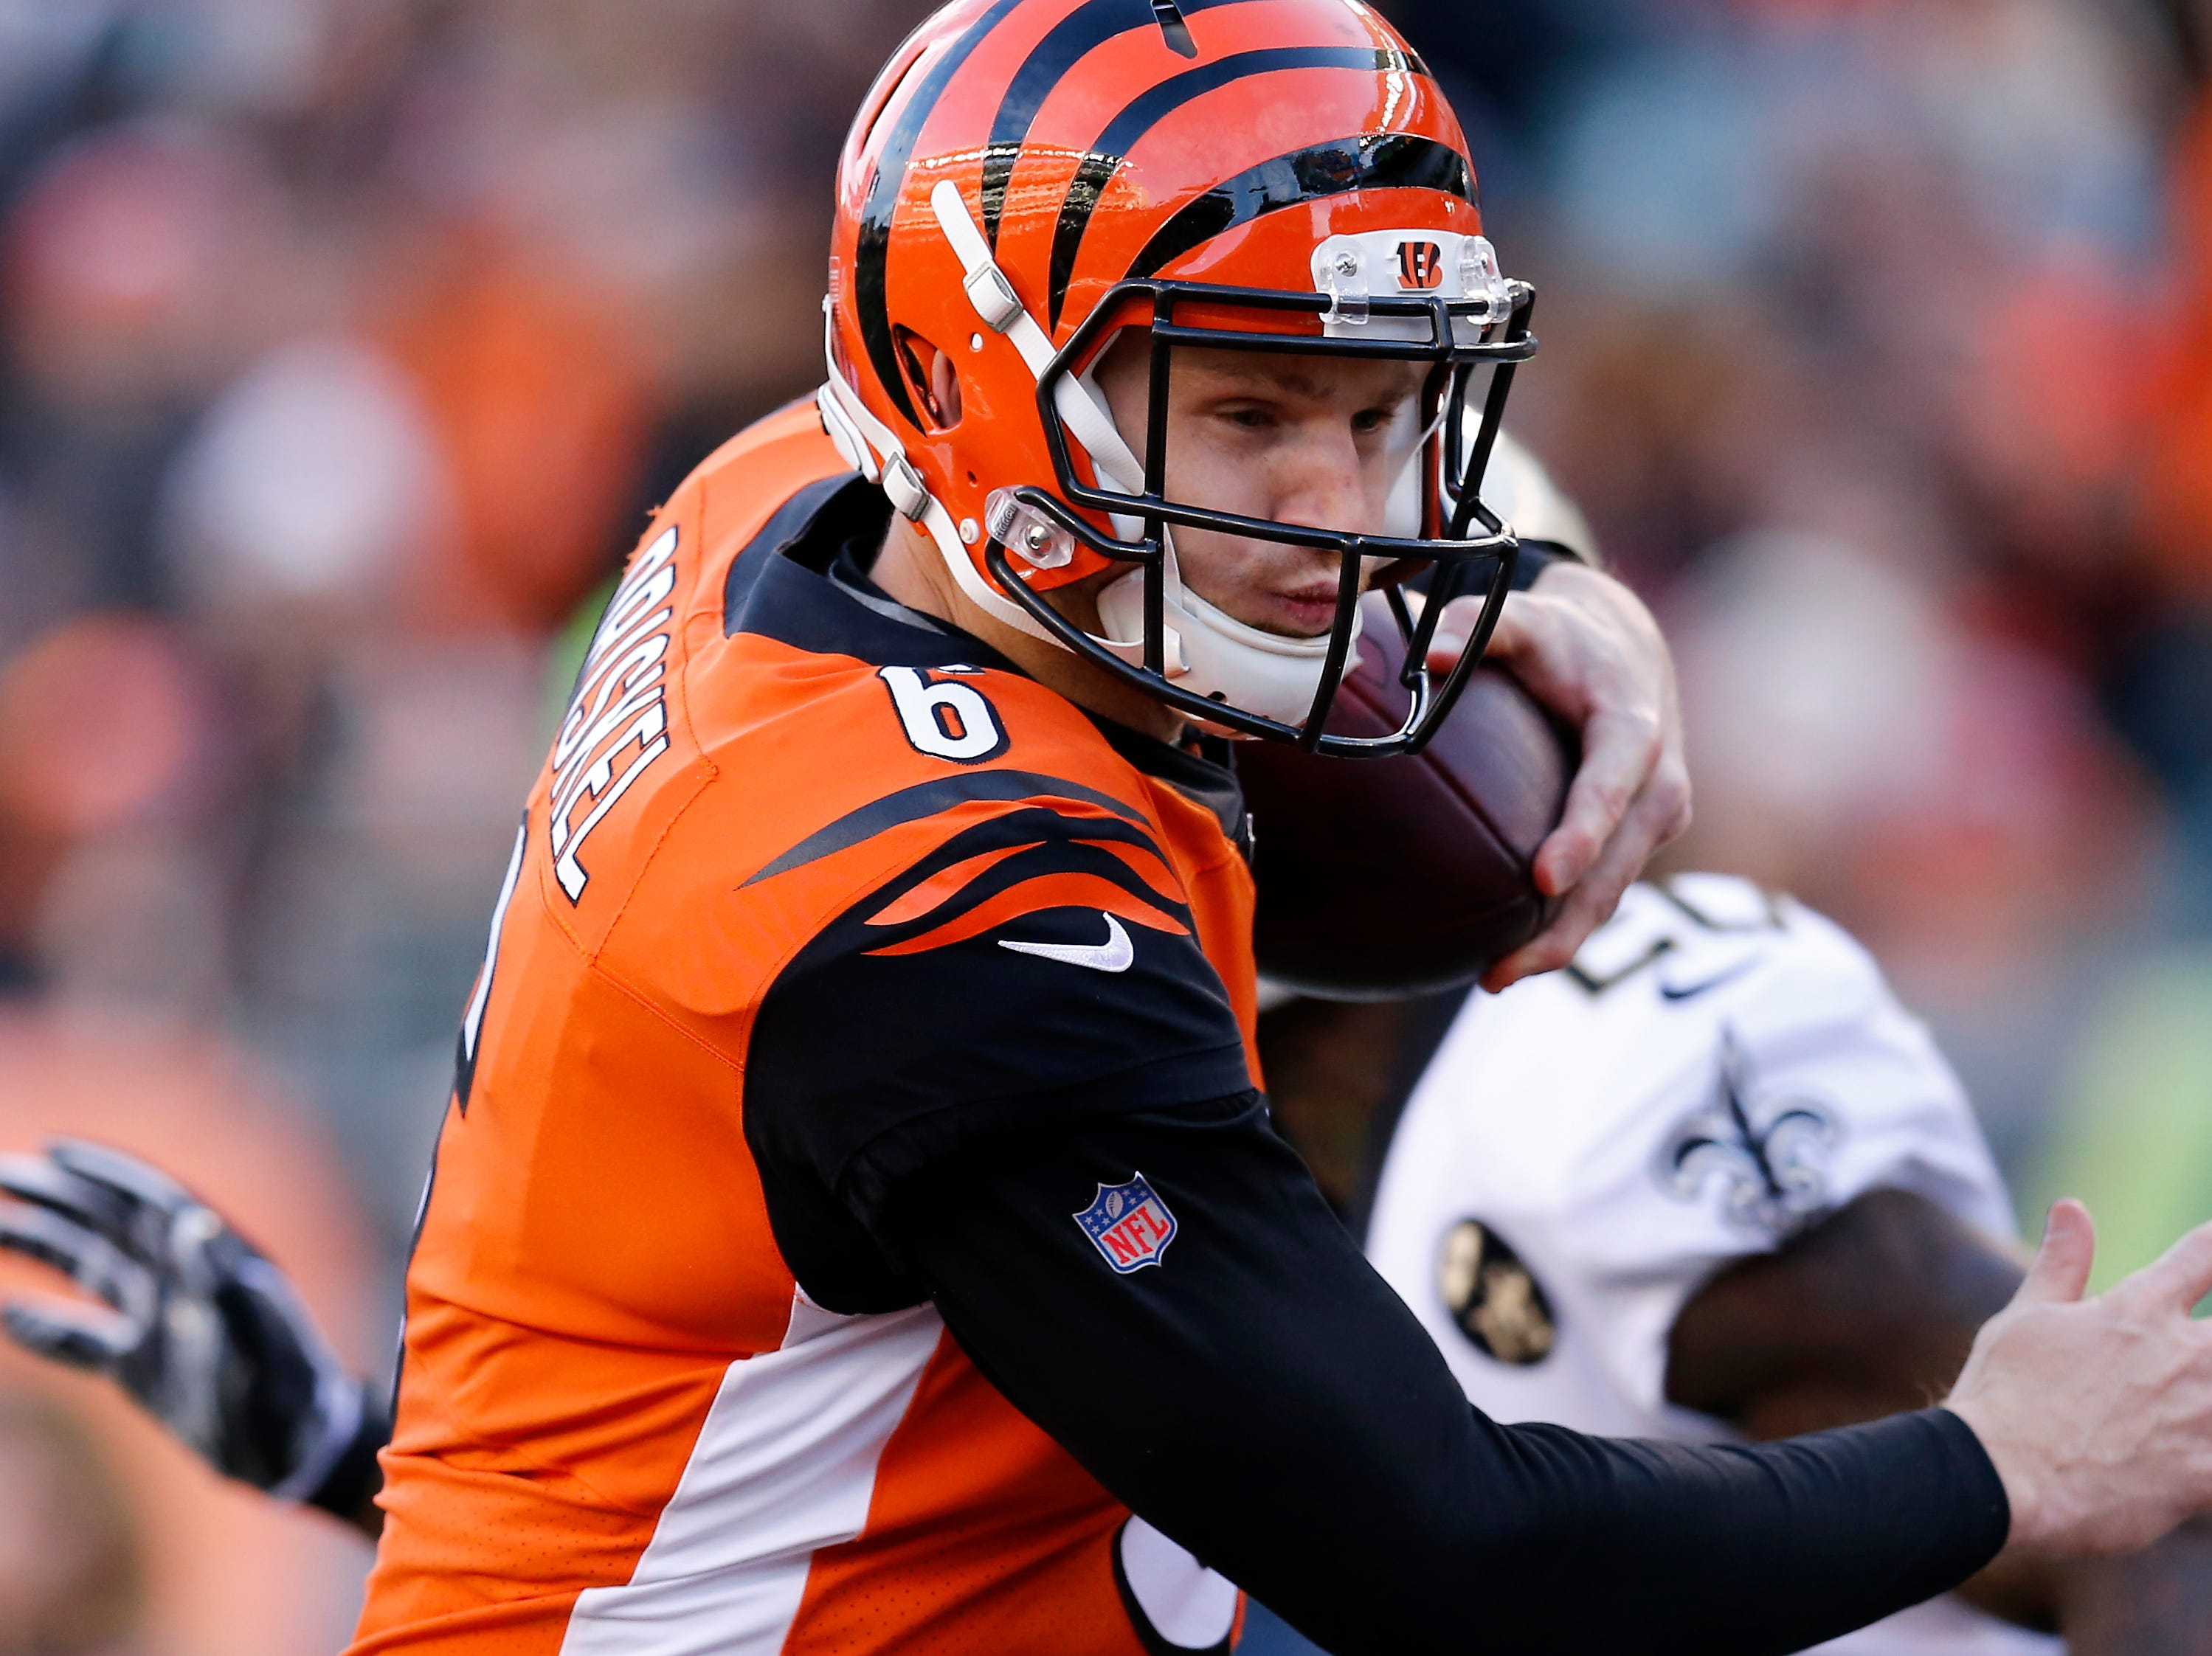 Cincinnati Bengals quarterback Jeff Driskel (6) run in a QB keeper for a touchdown in the fourth quarter of the NFL Week 10 game between the Cincinnati Bengals and the New Orleans Saints at Paul Brown Stadium in downtown Cincinnati on Sunday, Nov. 11, 2018. The Saints beat the Bengals 51-14.